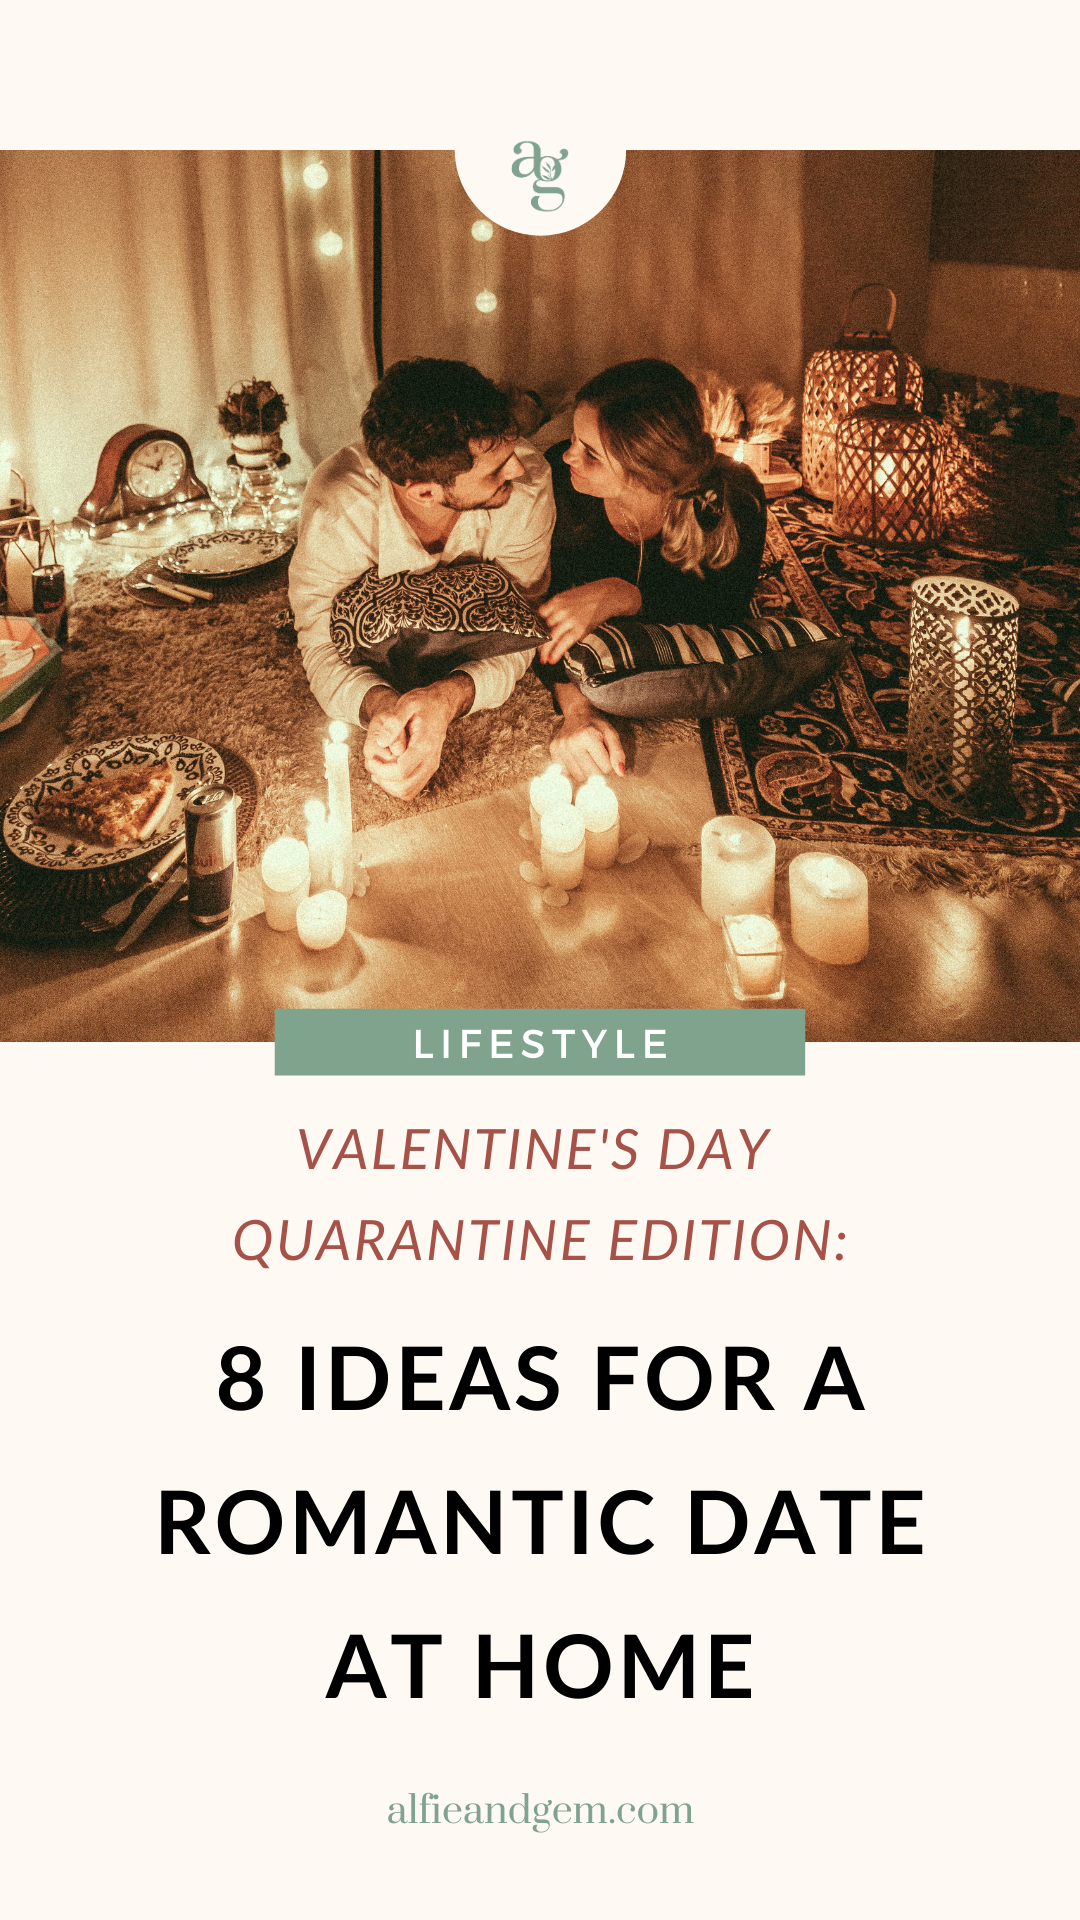 Stay-at-home date ideas for Valentine's Day